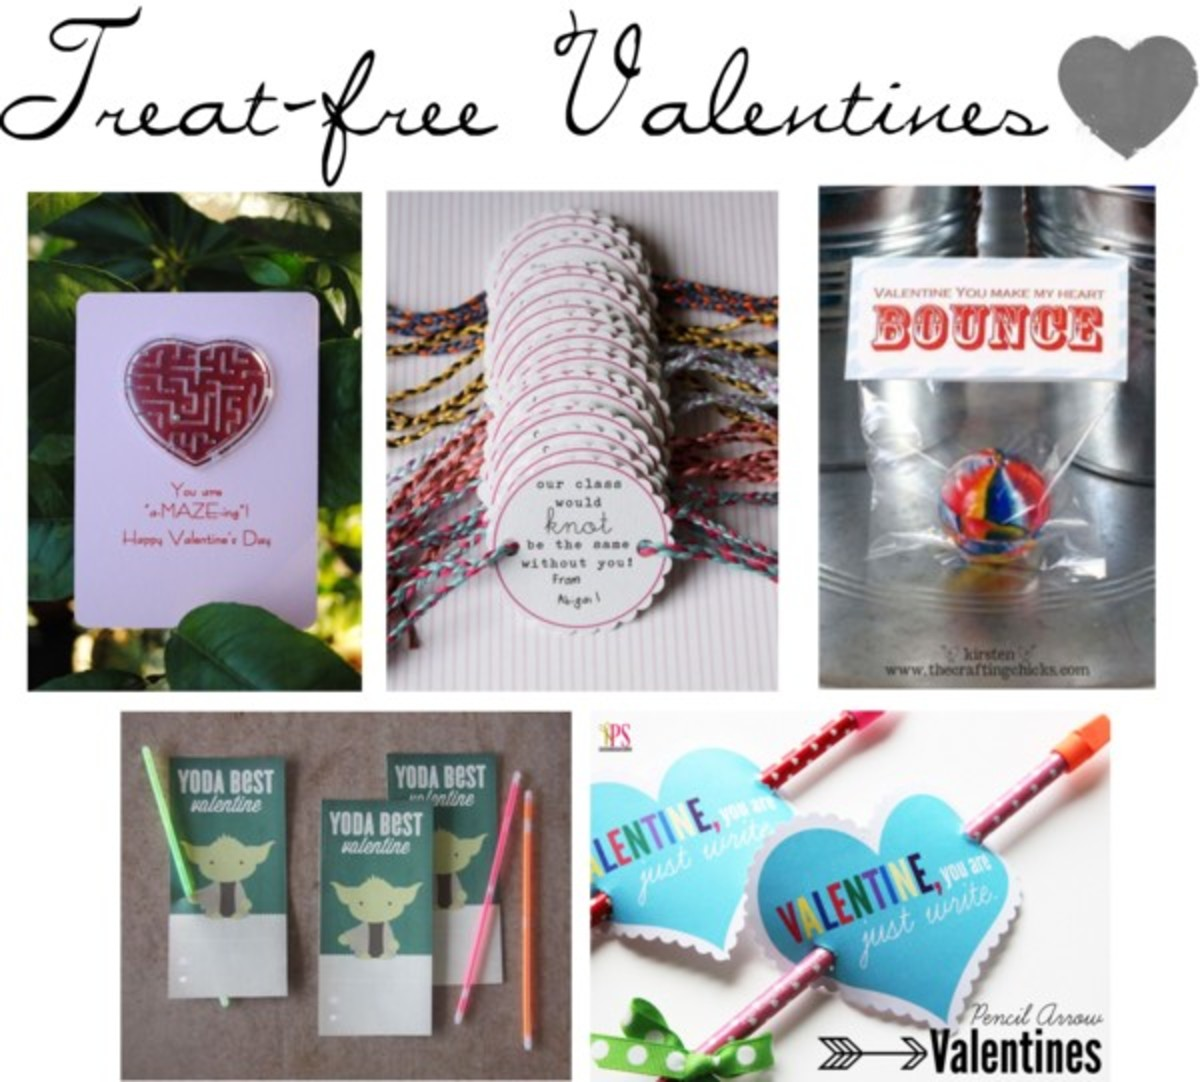 Treat-free Valentines